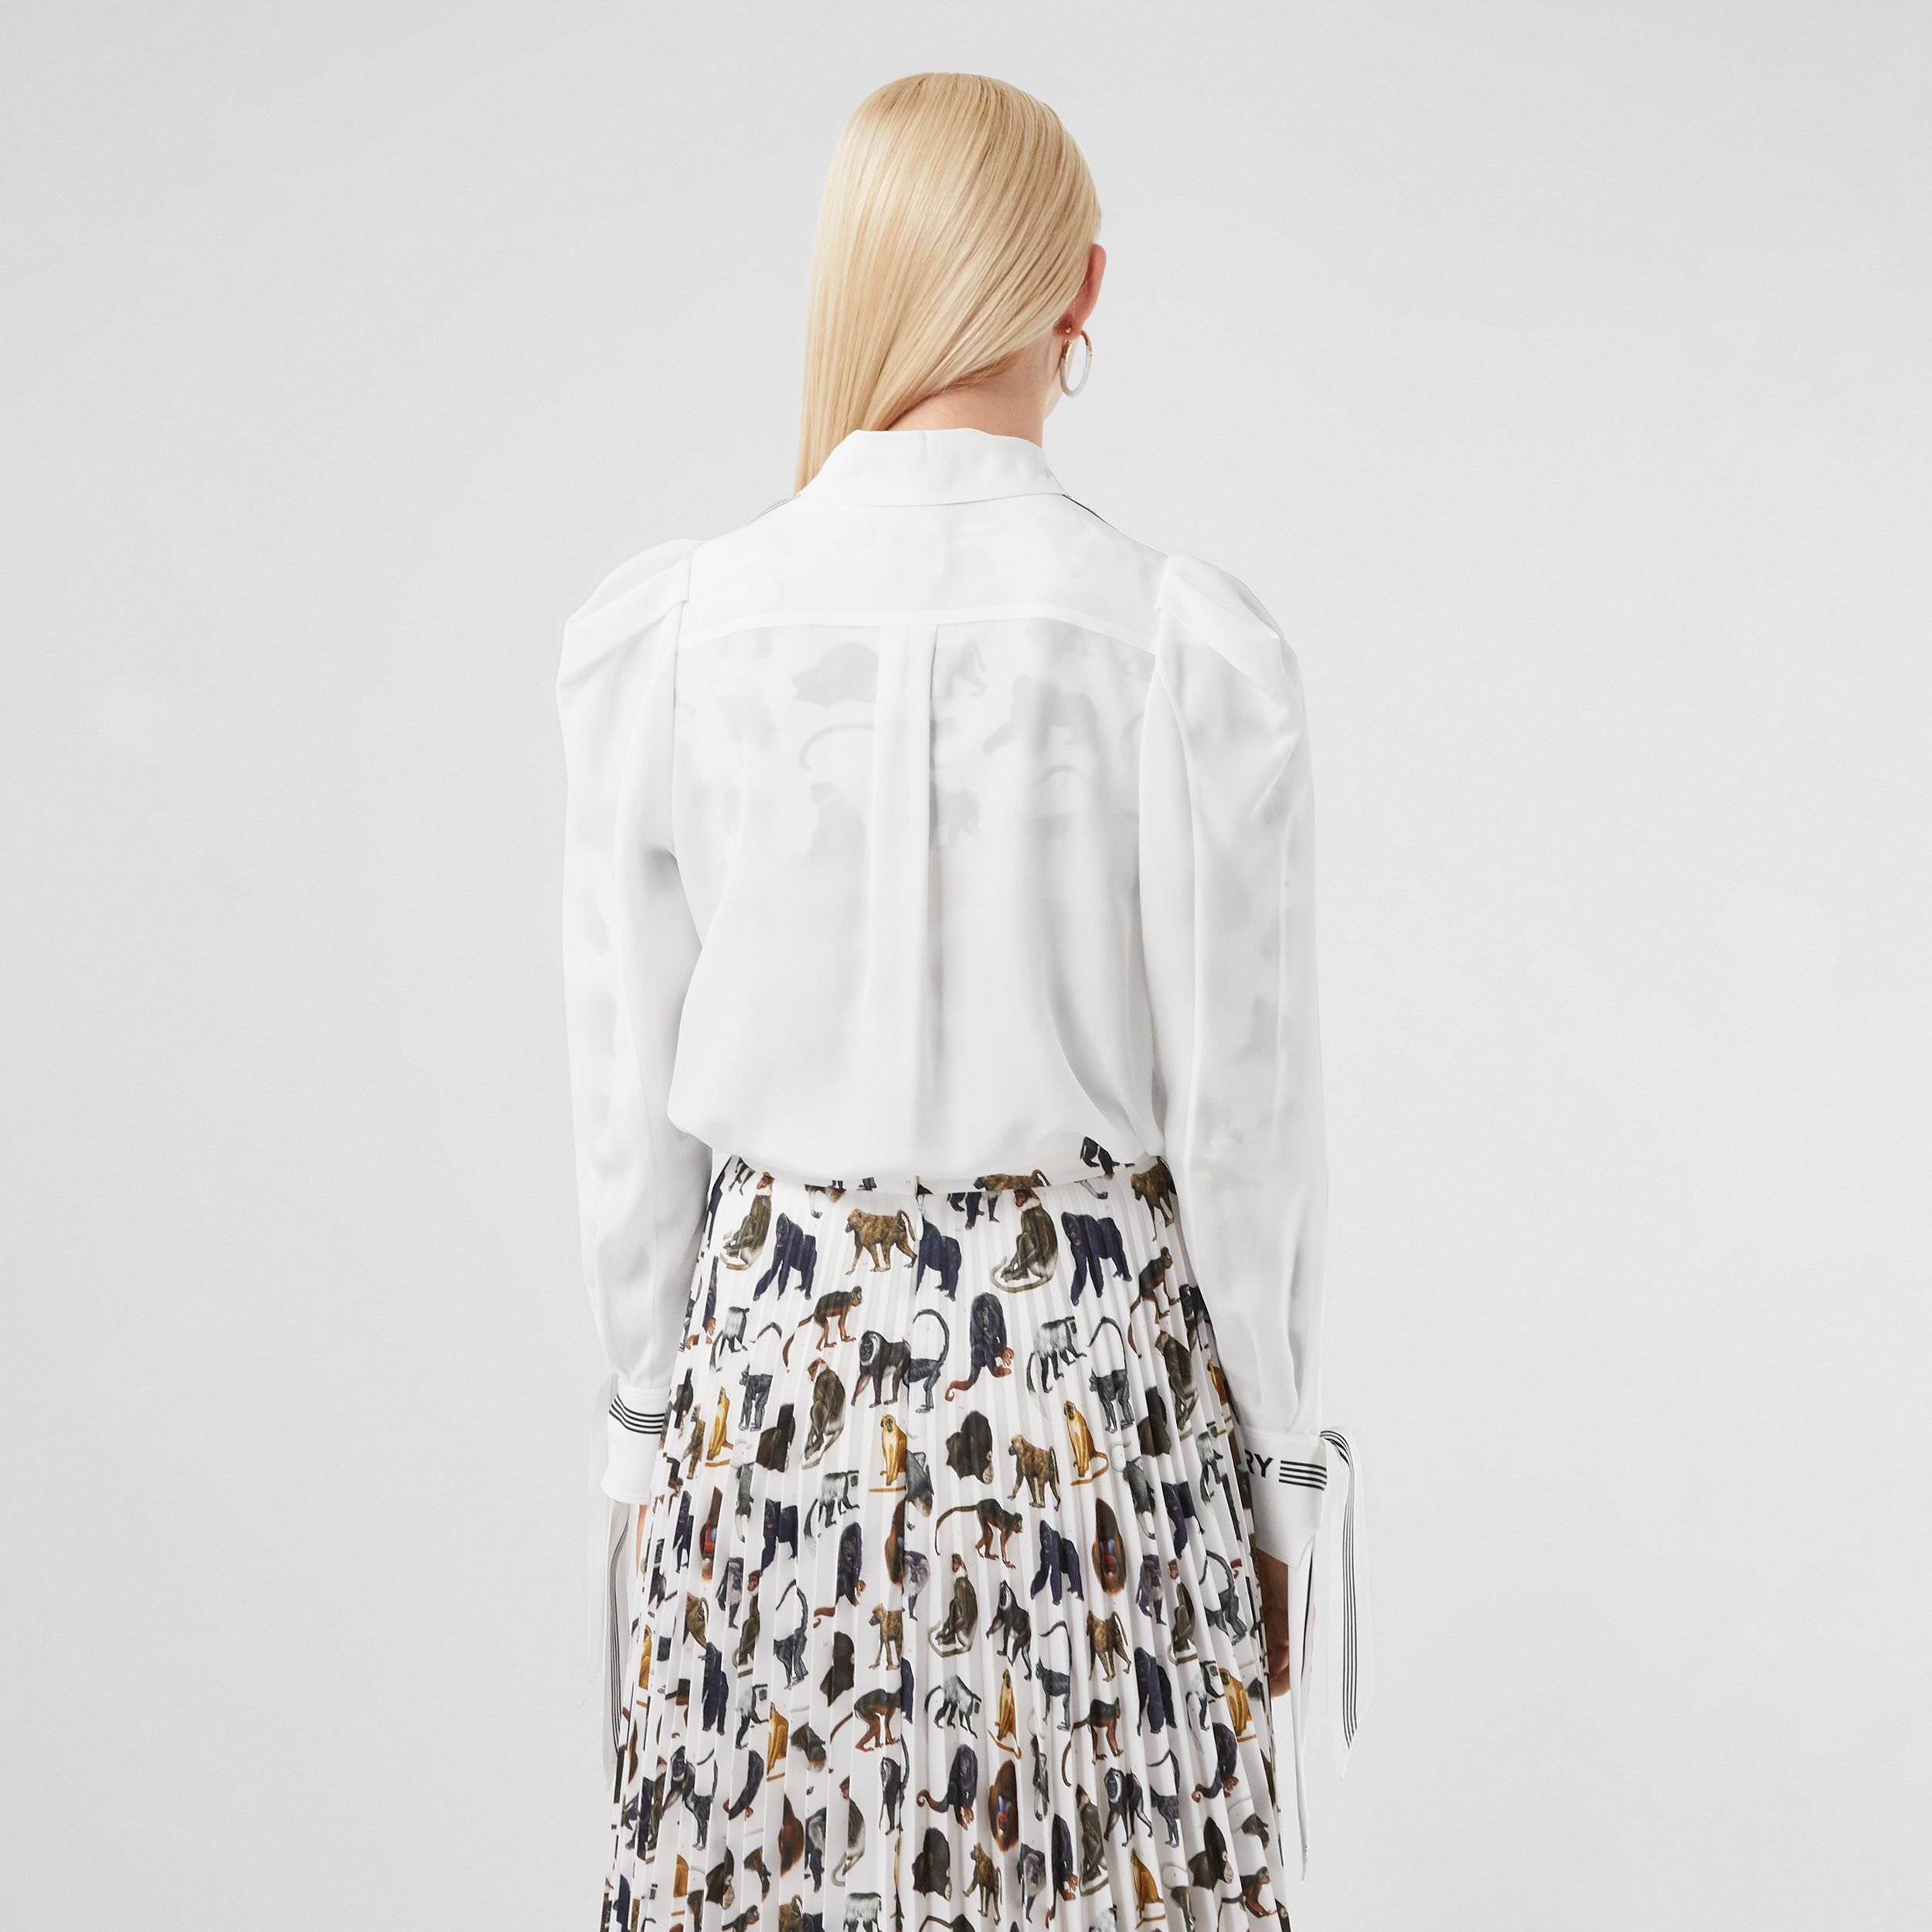 Logo Print Silk Crepe De Chine Shirt in White - Women | Burberry United Kingdom - 3